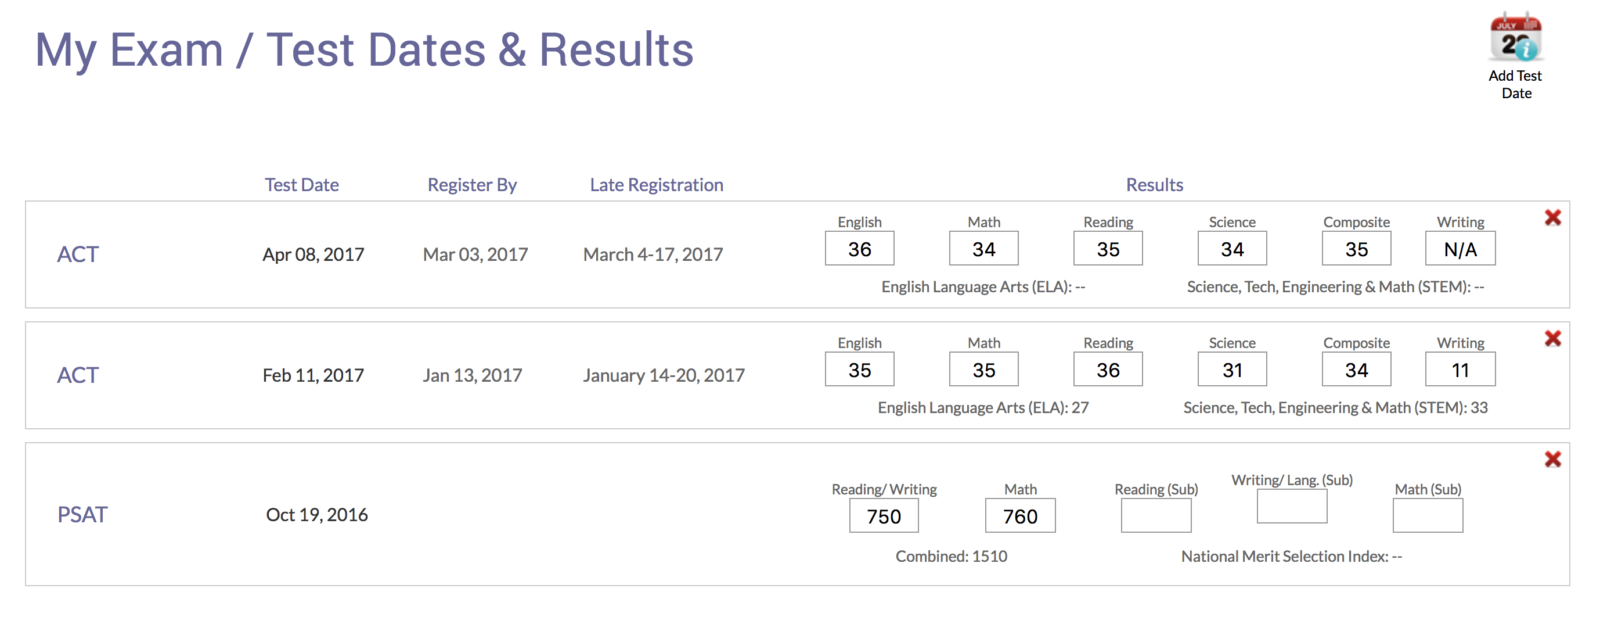 CollegePlannerPro Testing Dashboard to Track Student SAT and ACT Test Scores